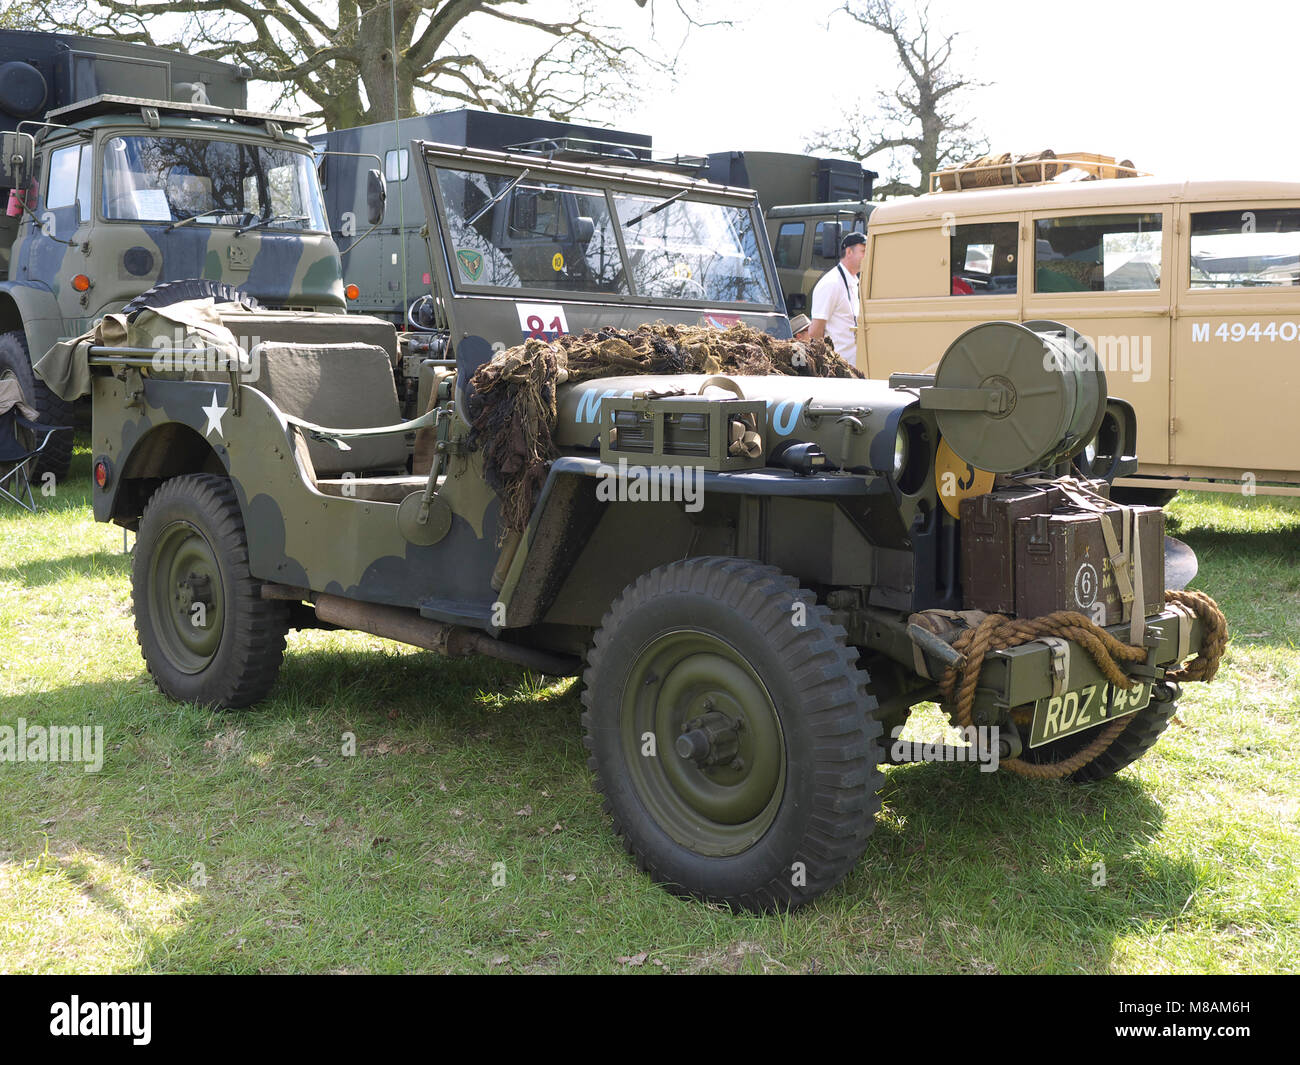 Classic jeep on display at Stradsett rally, Norfolk - Stock Image